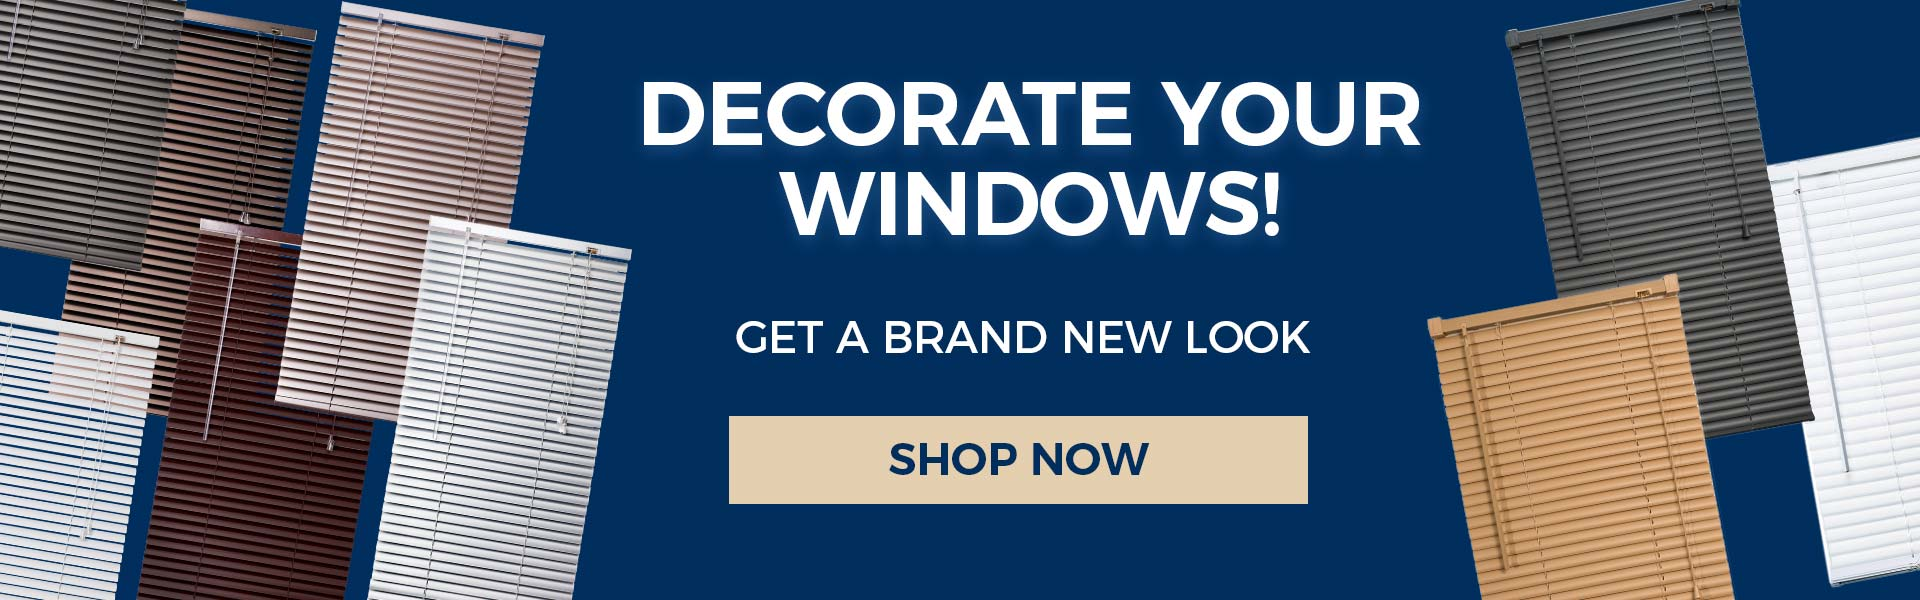 Finishing Touches - Decorate Your Windows!